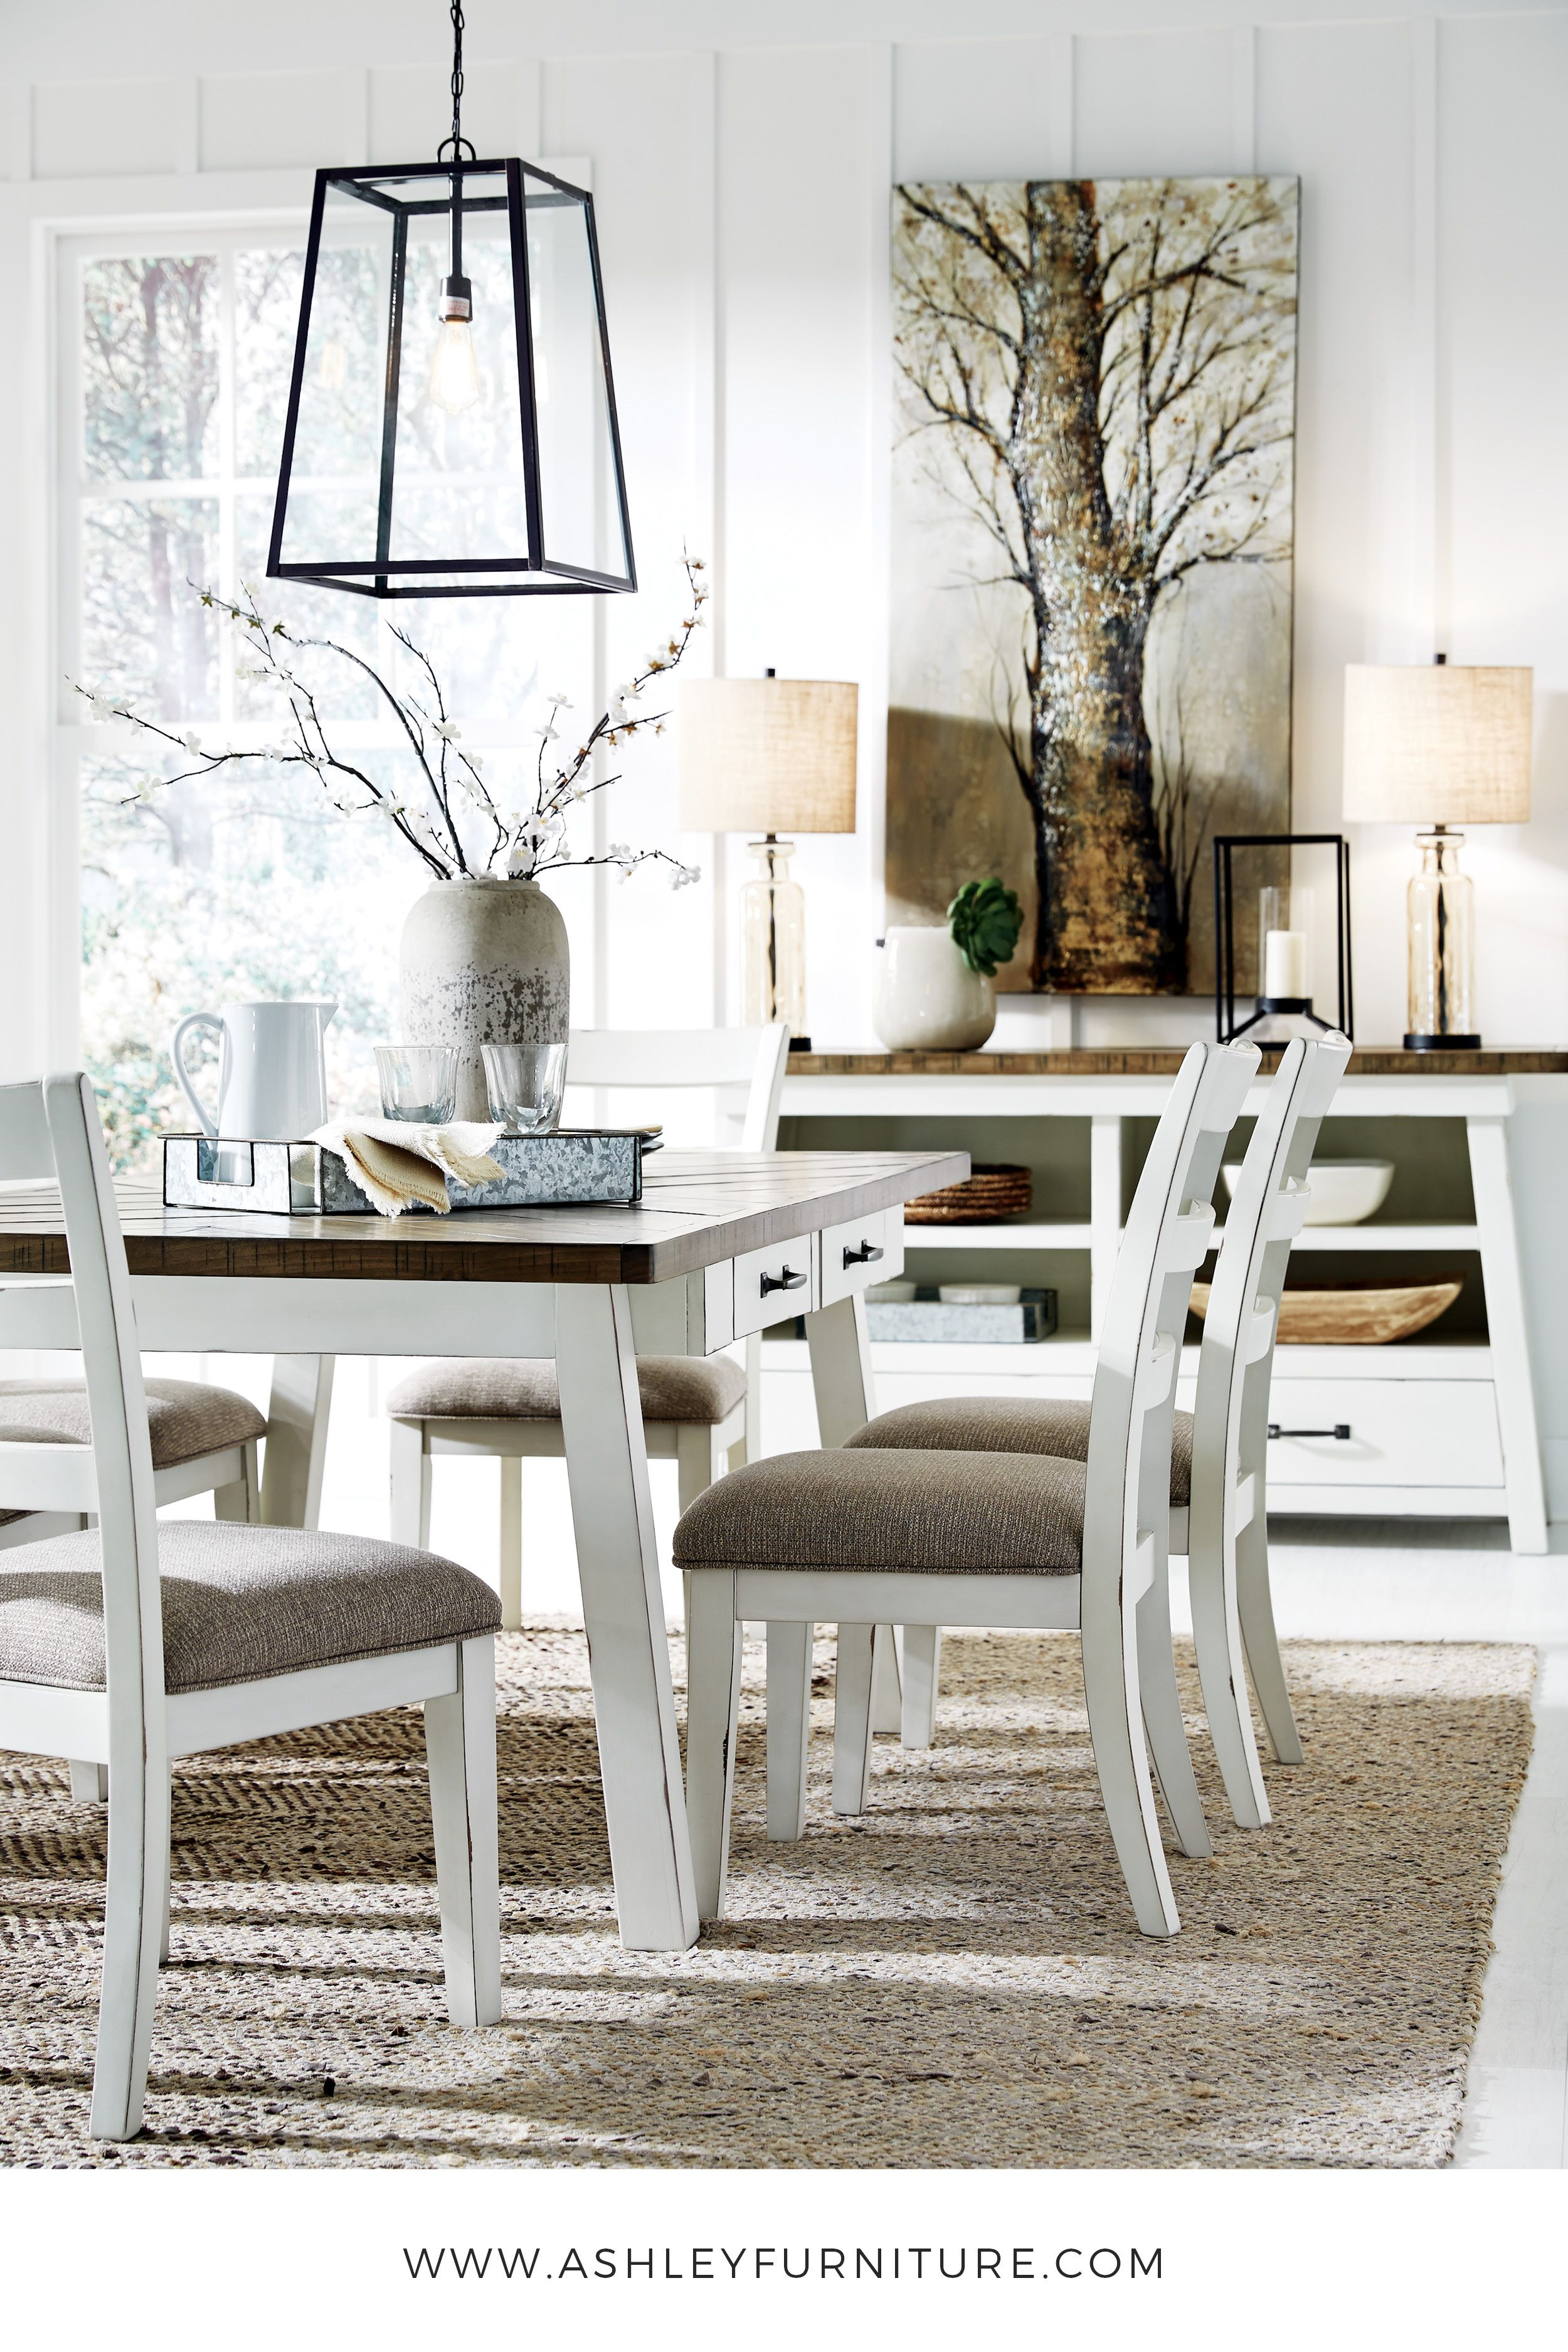 Stownbranner Dining Room Set By Ashley Furniture | Pastoral Charm® |  Farmhouse Style | #pastoralcharm #farmhouse #diningroom